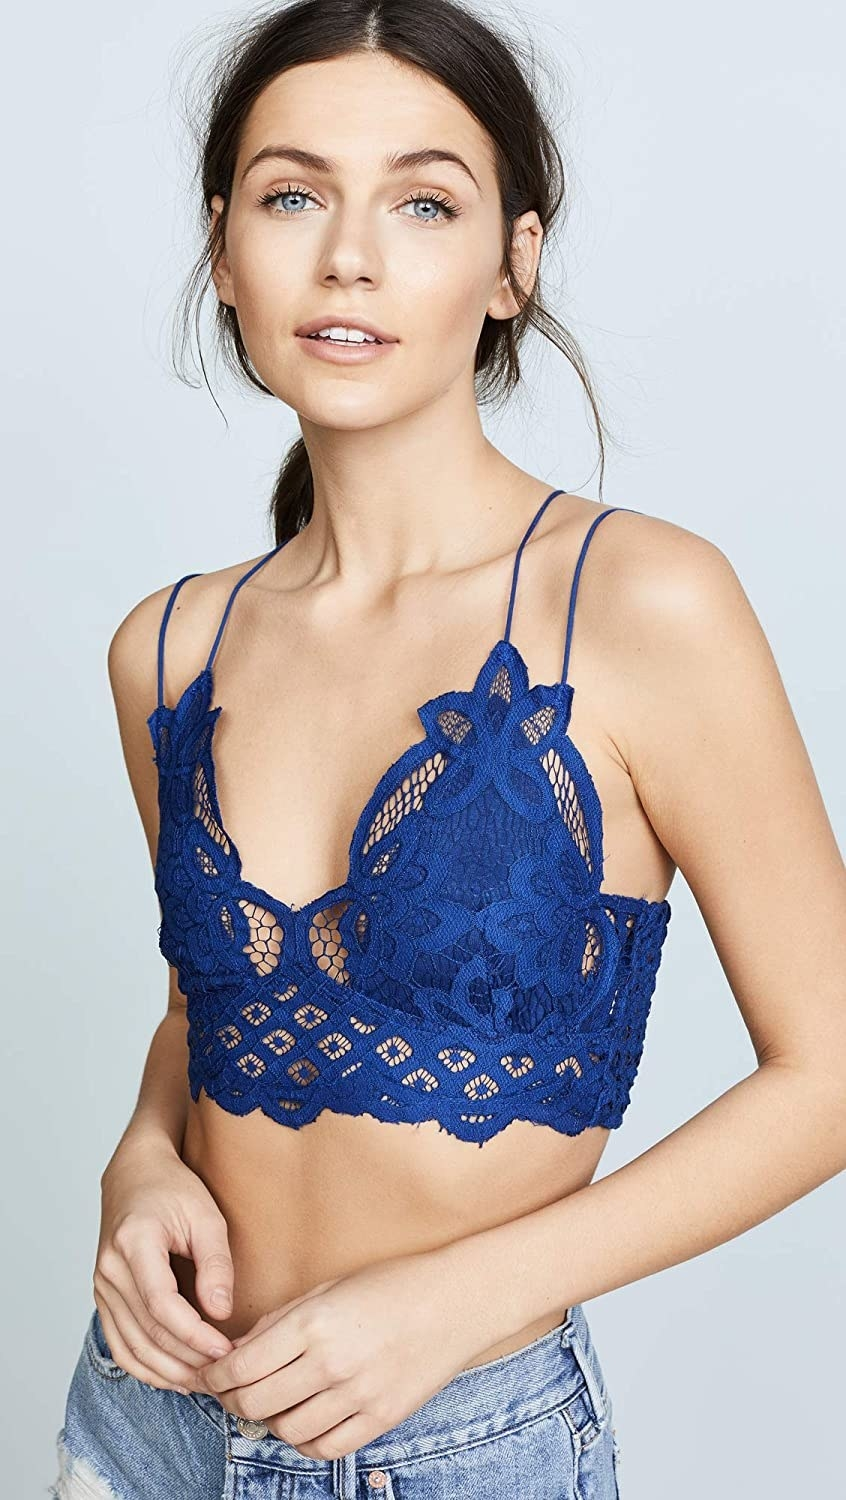 model wearing the royal blue bralette